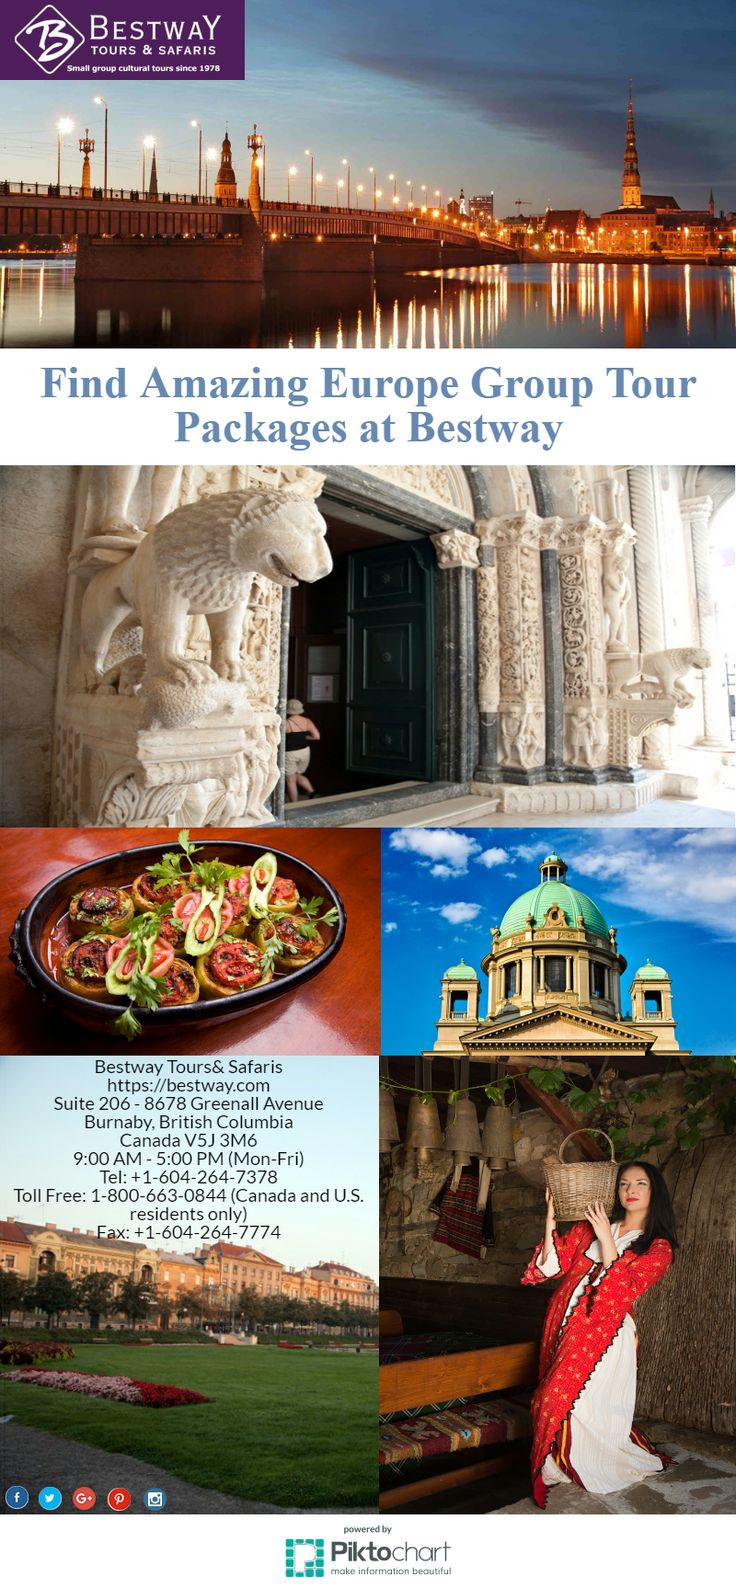 Find Amazing Europe Group Tour Packages at Bestway  Bestway Tours & Safaris offers modern day grand tour packages of Europe is facilitated by an inexpensive airline infrastructure and some of the best train journey in the world. See for yourself and enjoy on one of our Europe tours.